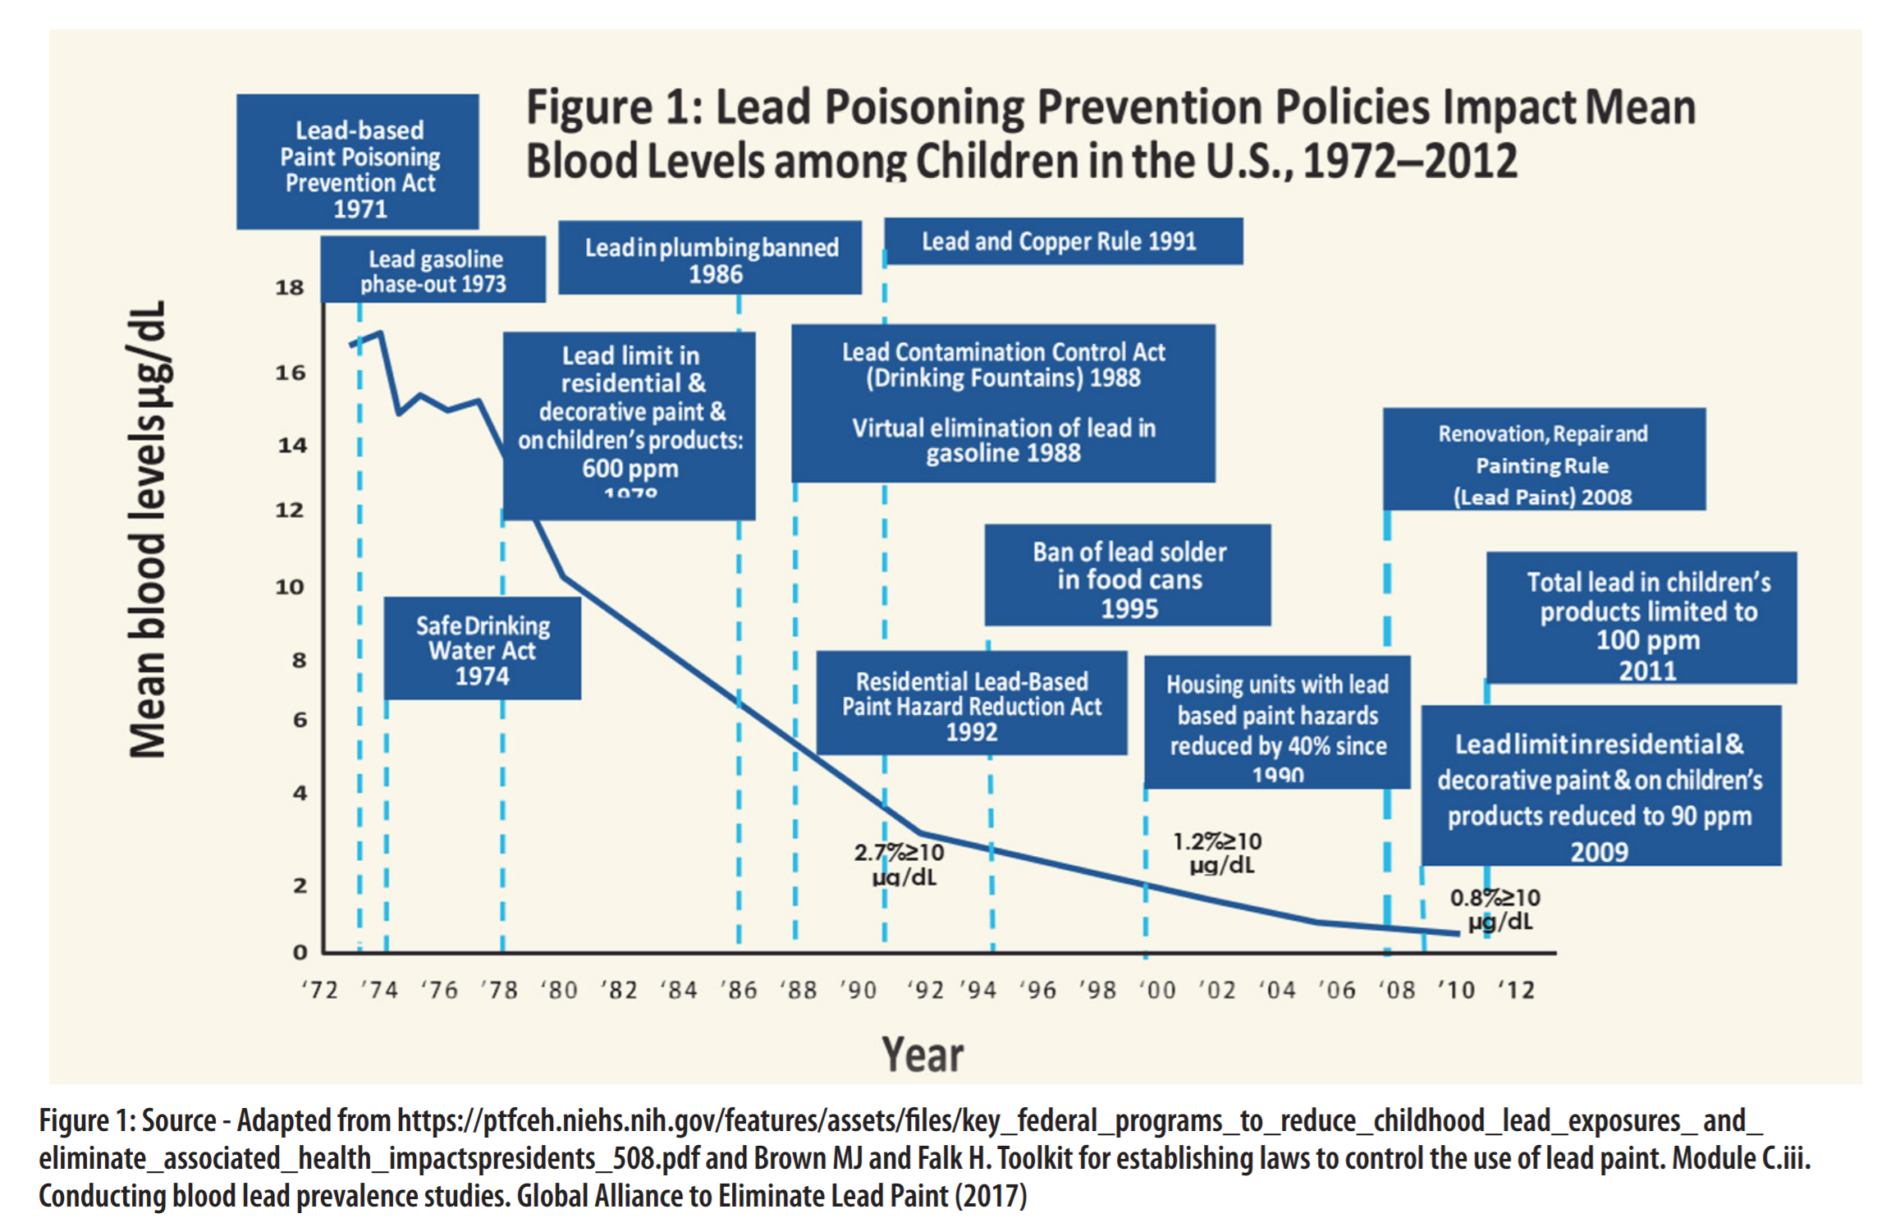 Lead Poisoning Prevention Policies Impact Mean Blood Levels Among Children in the U.S. 1972-2012